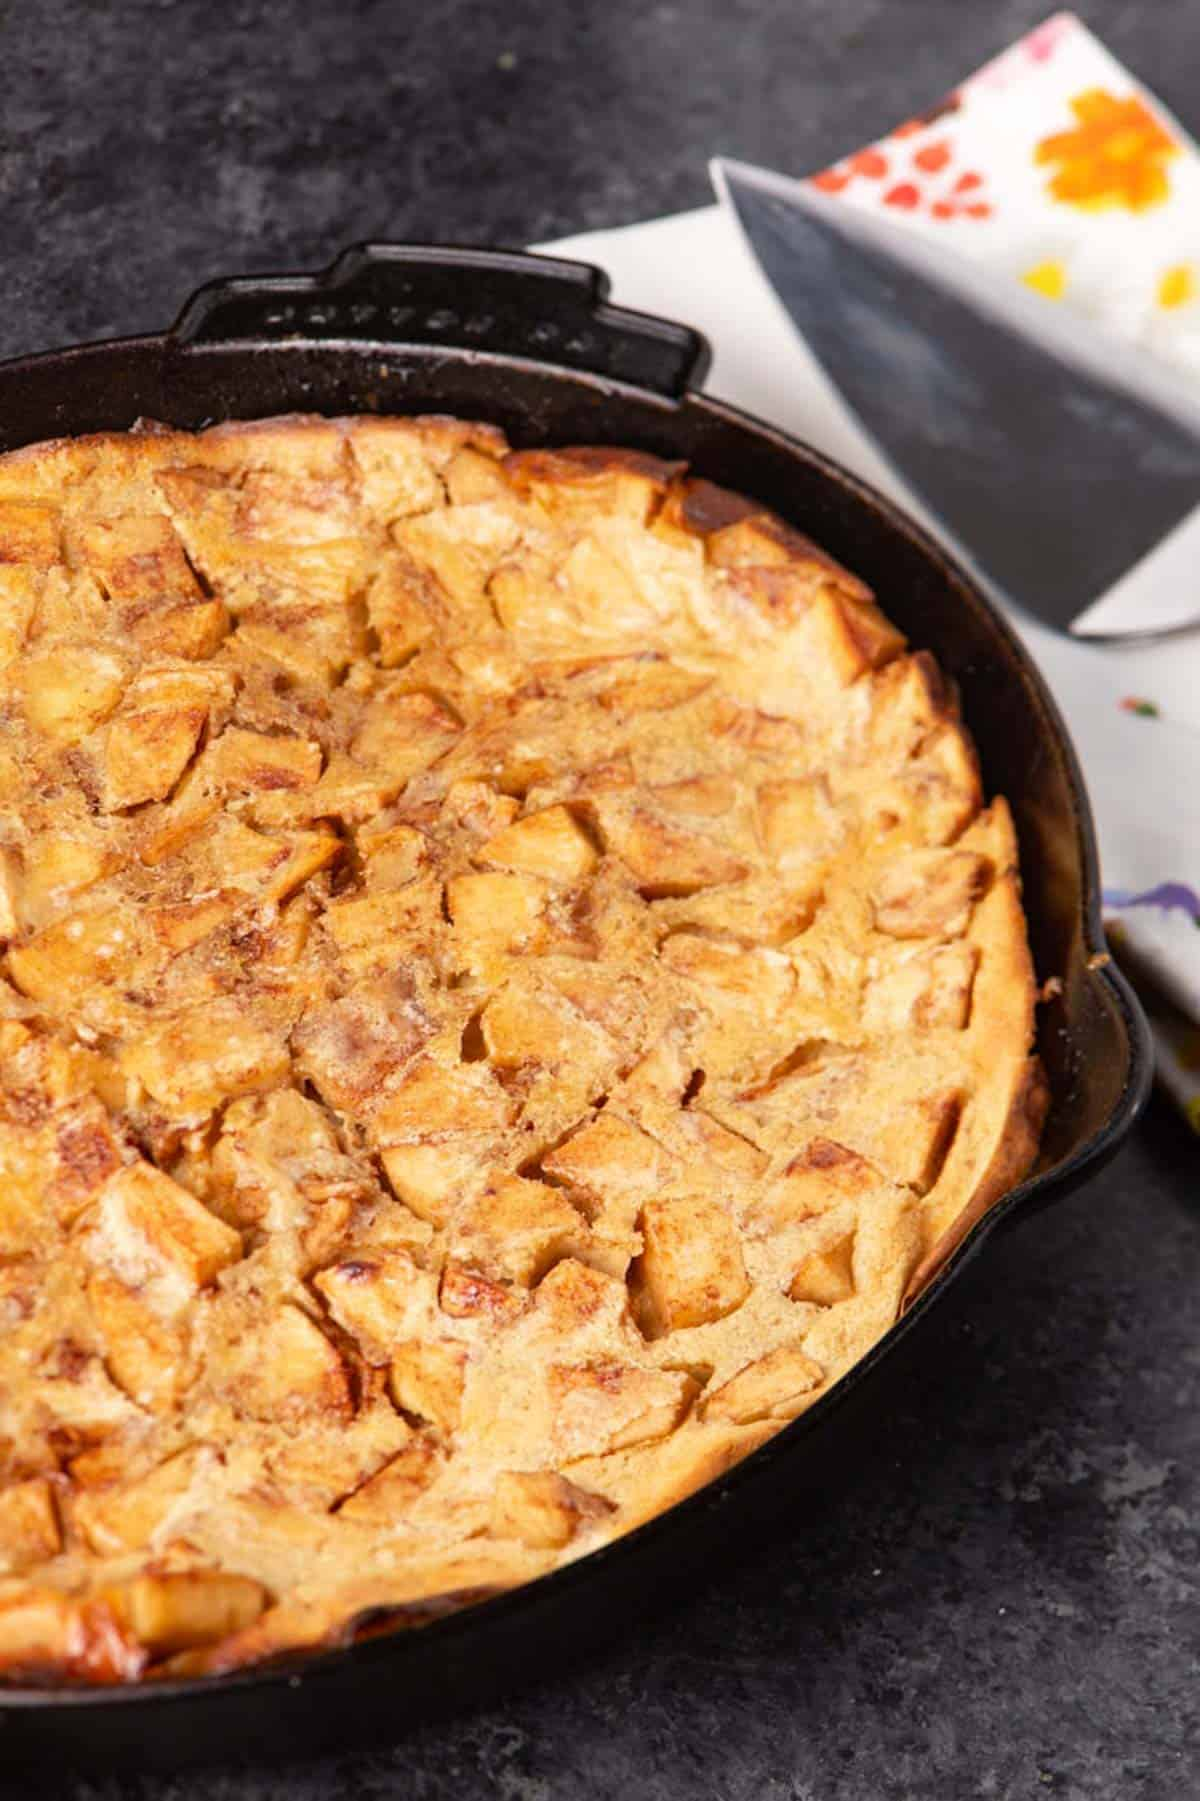 A German apple pancake after it has been baked.